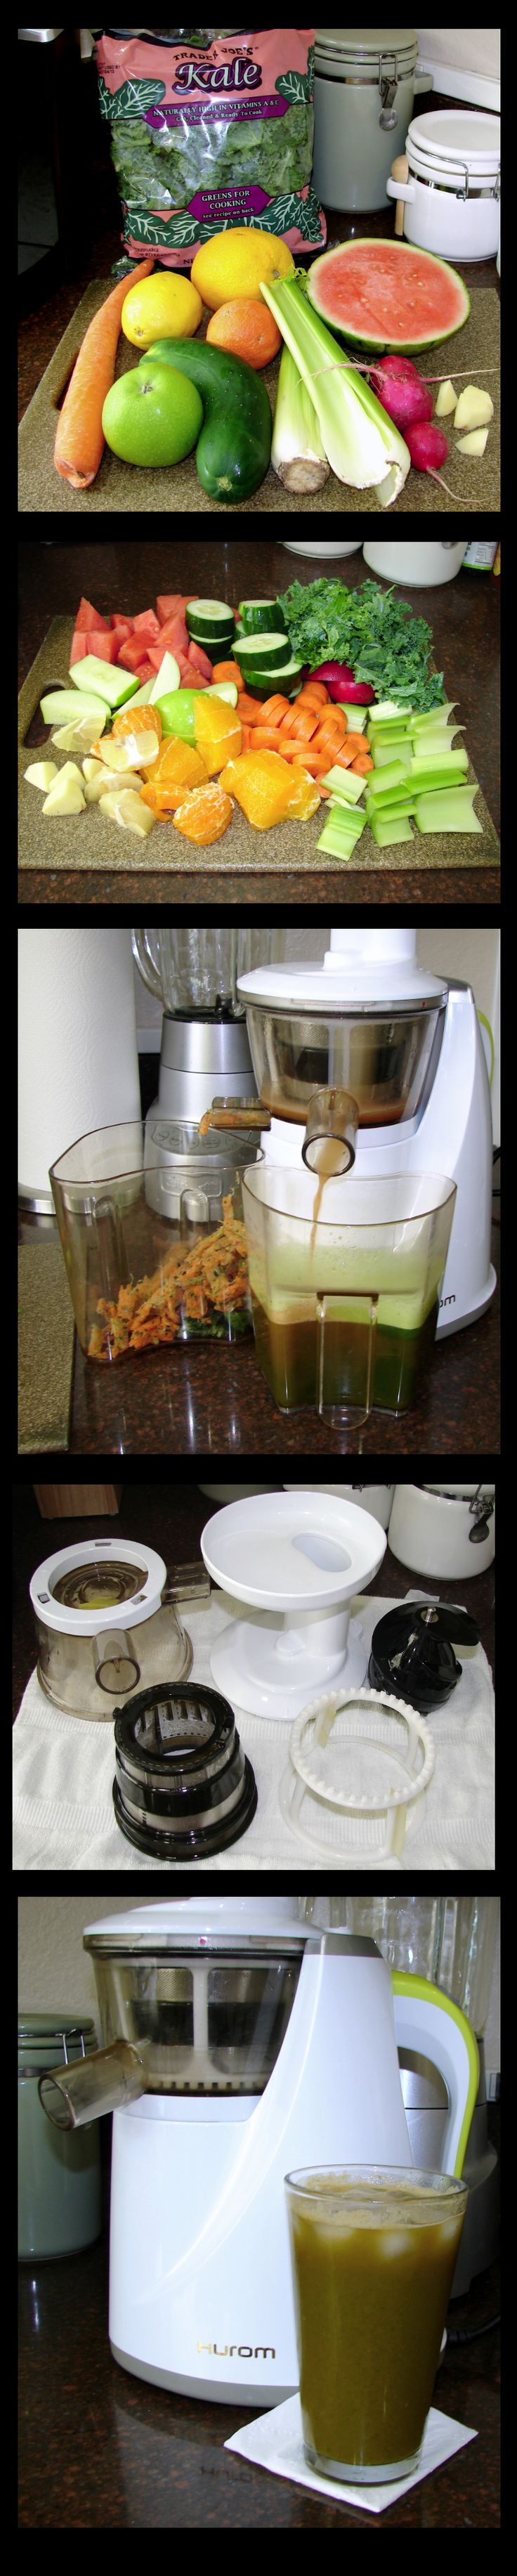 Kale In Slow Juicer : 1000+ images about Best Juicer for Kale on Pinterest Kale, Apples and Best juicing recipes